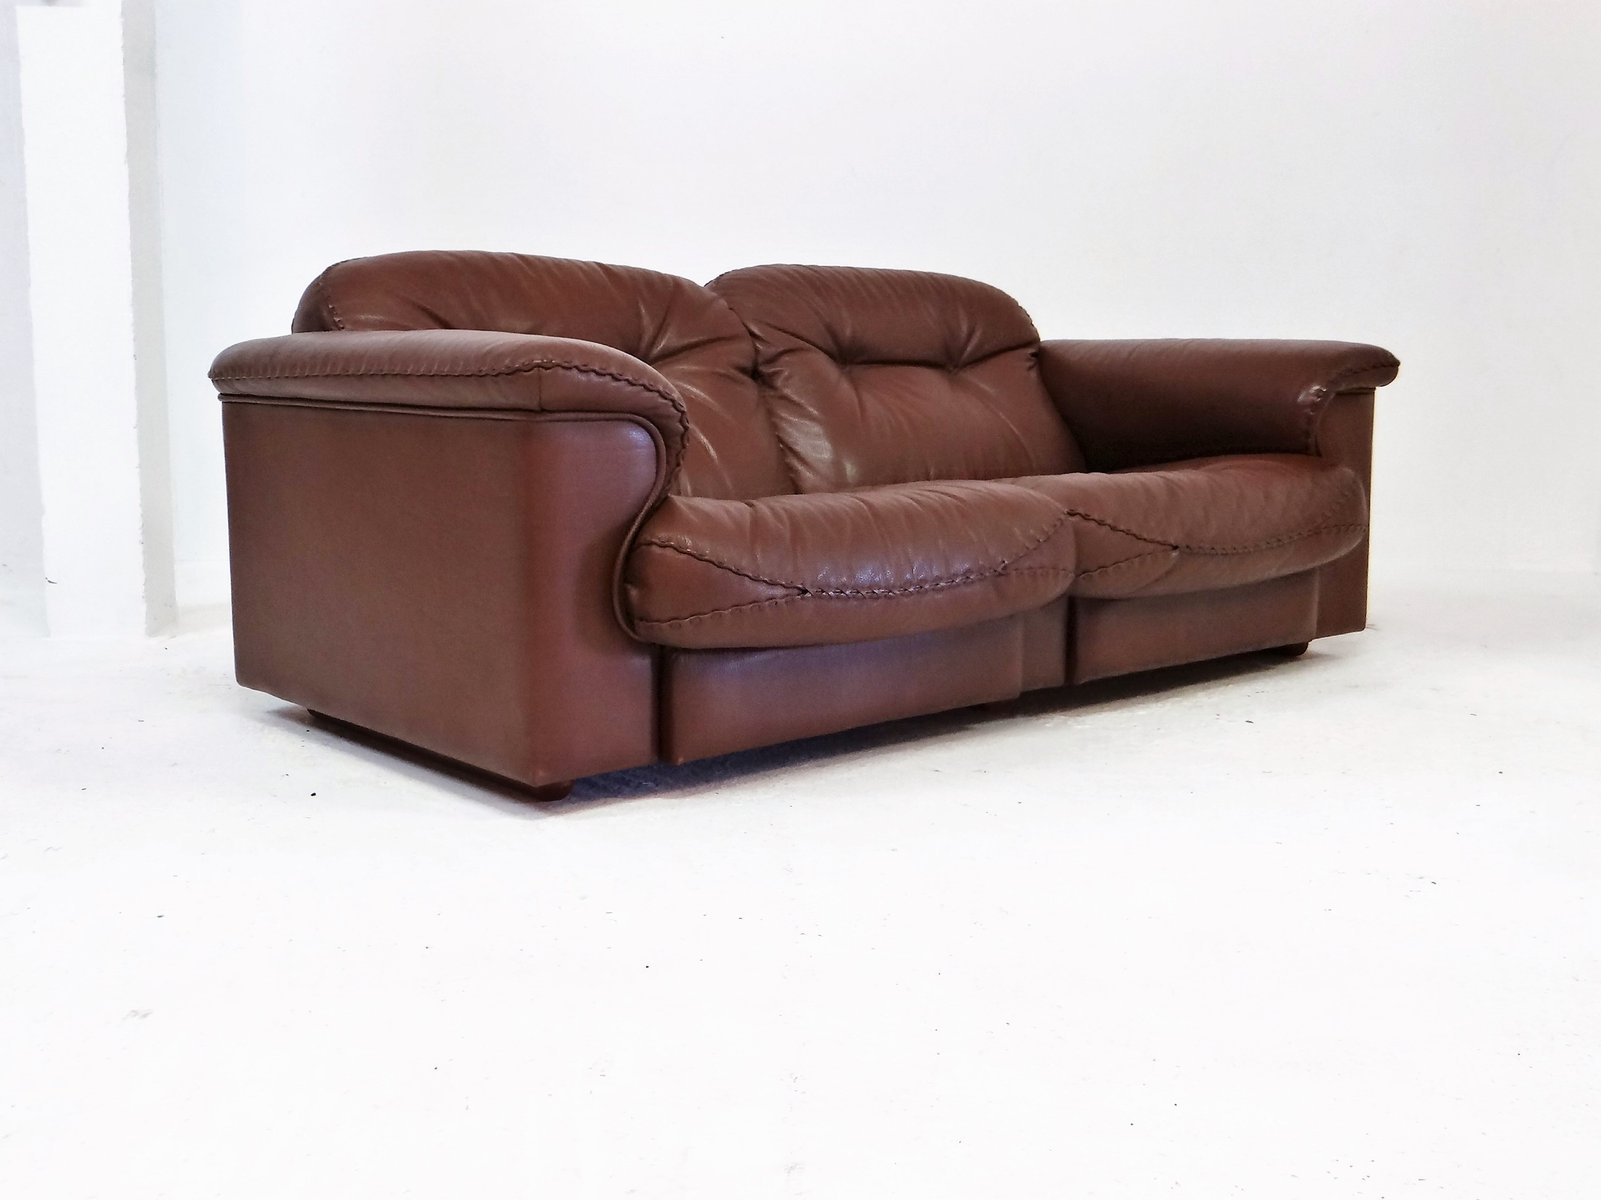 de sede sleeper sofa navy blue leather bed vintage ds 101 lounging from for sale at pamono price per piece